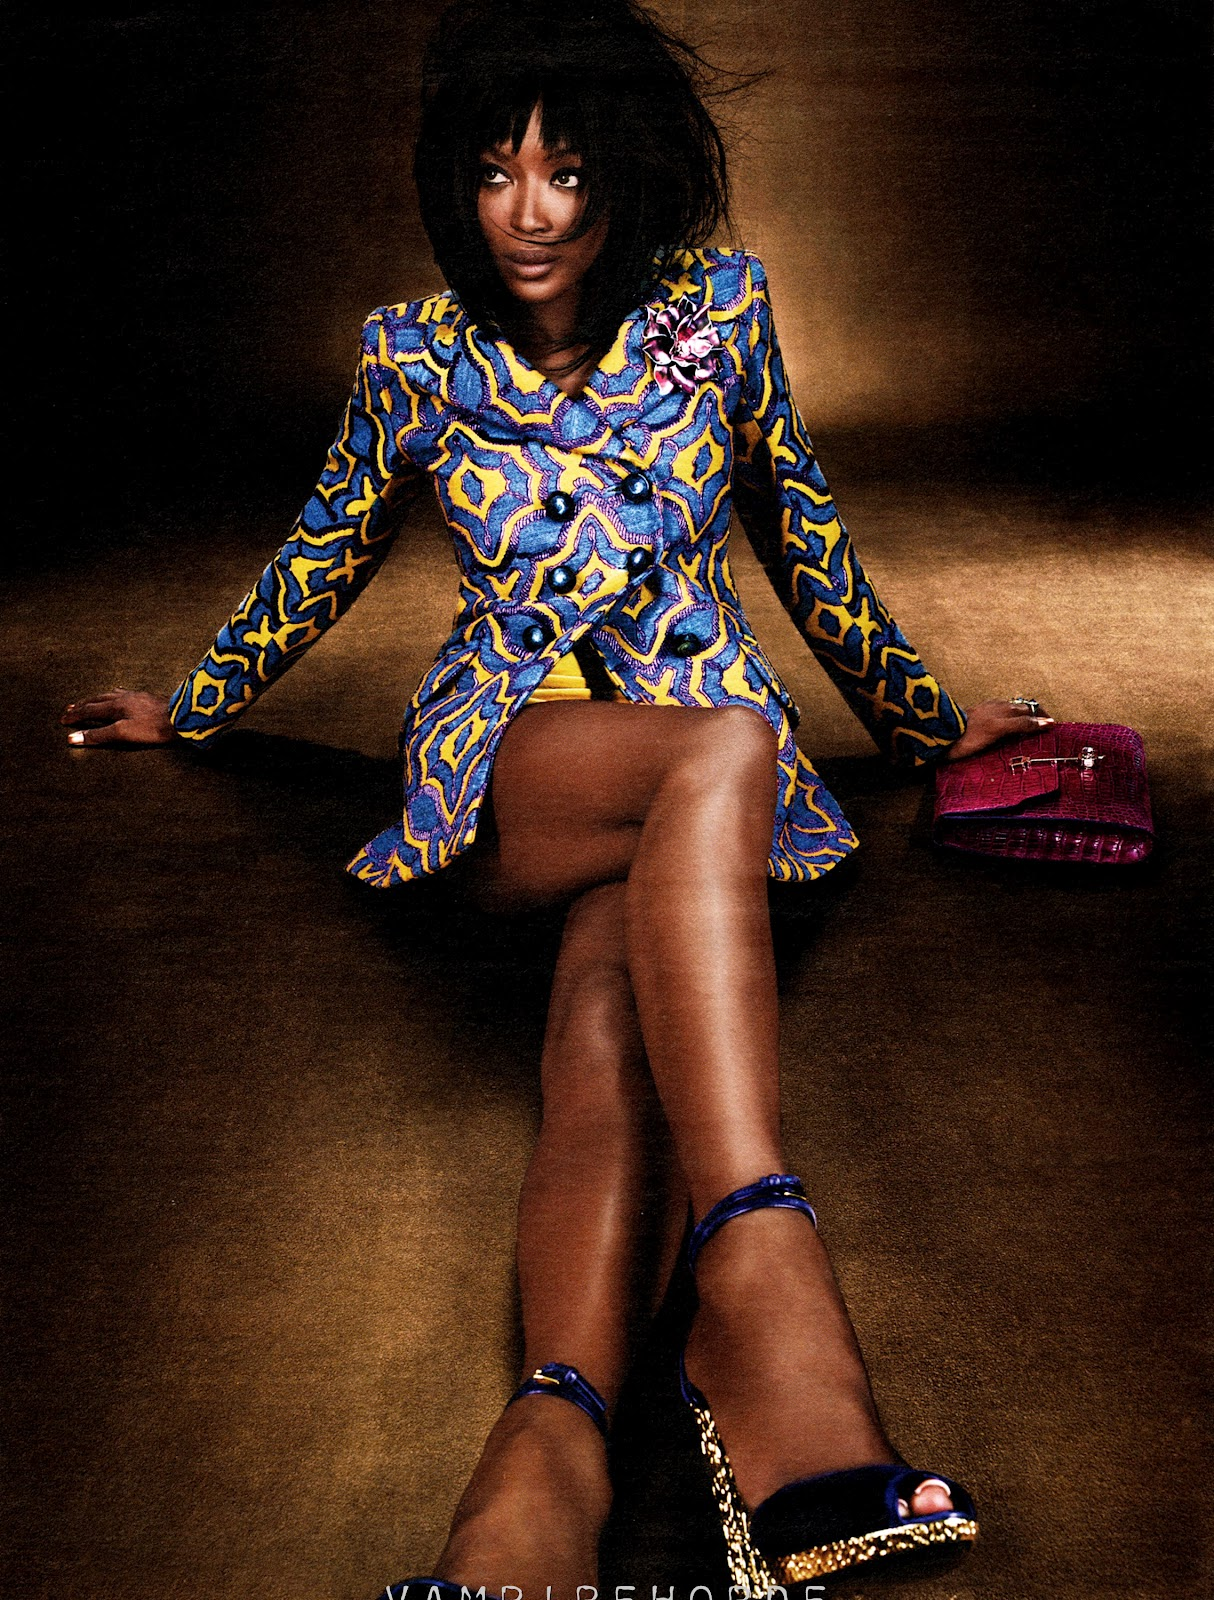 http://3.bp.blogspot.com/-_4x6Kejqj-c/T97fAUNapMI/AAAAAAABqg8/tx-LPpv_-_I/s1600/fashion_scans_remastered-naomi_campbell-w-july_2012-scanned_by_vampirehorde-hq-6.jpg